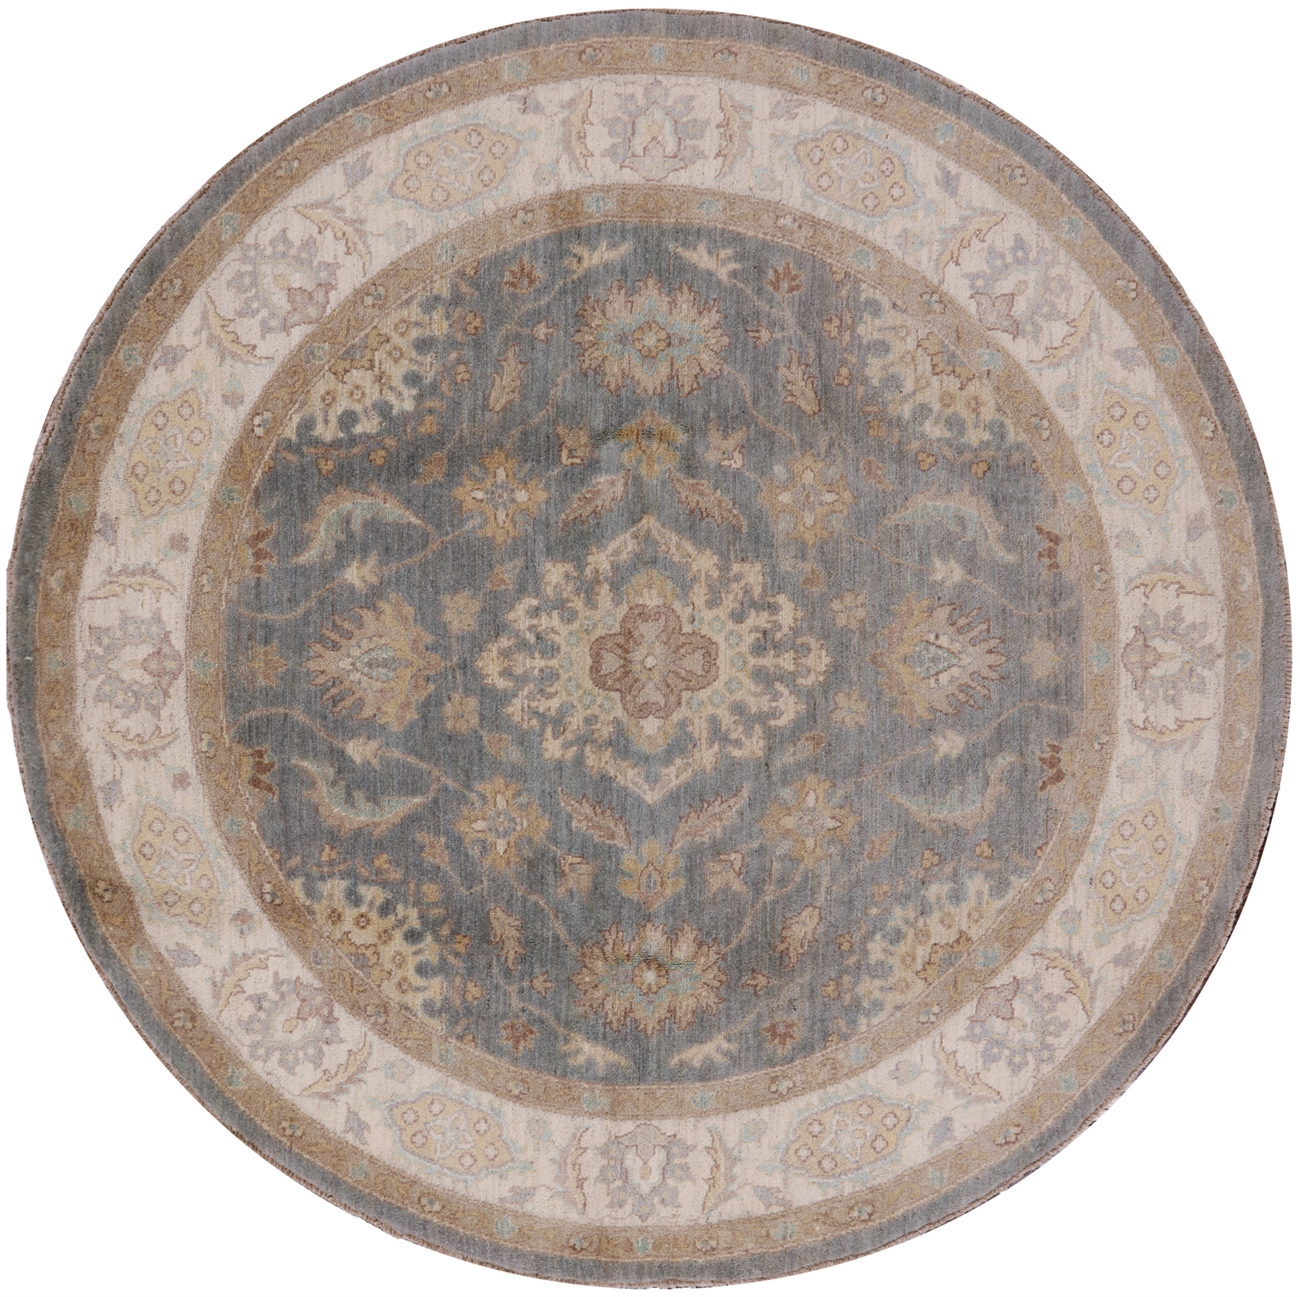 Fine Round Persian Bidjar Area Rug Hand Knotted Wool And: New 6' Round Oriental Peshawar Blue Chobi Knotted By Hand